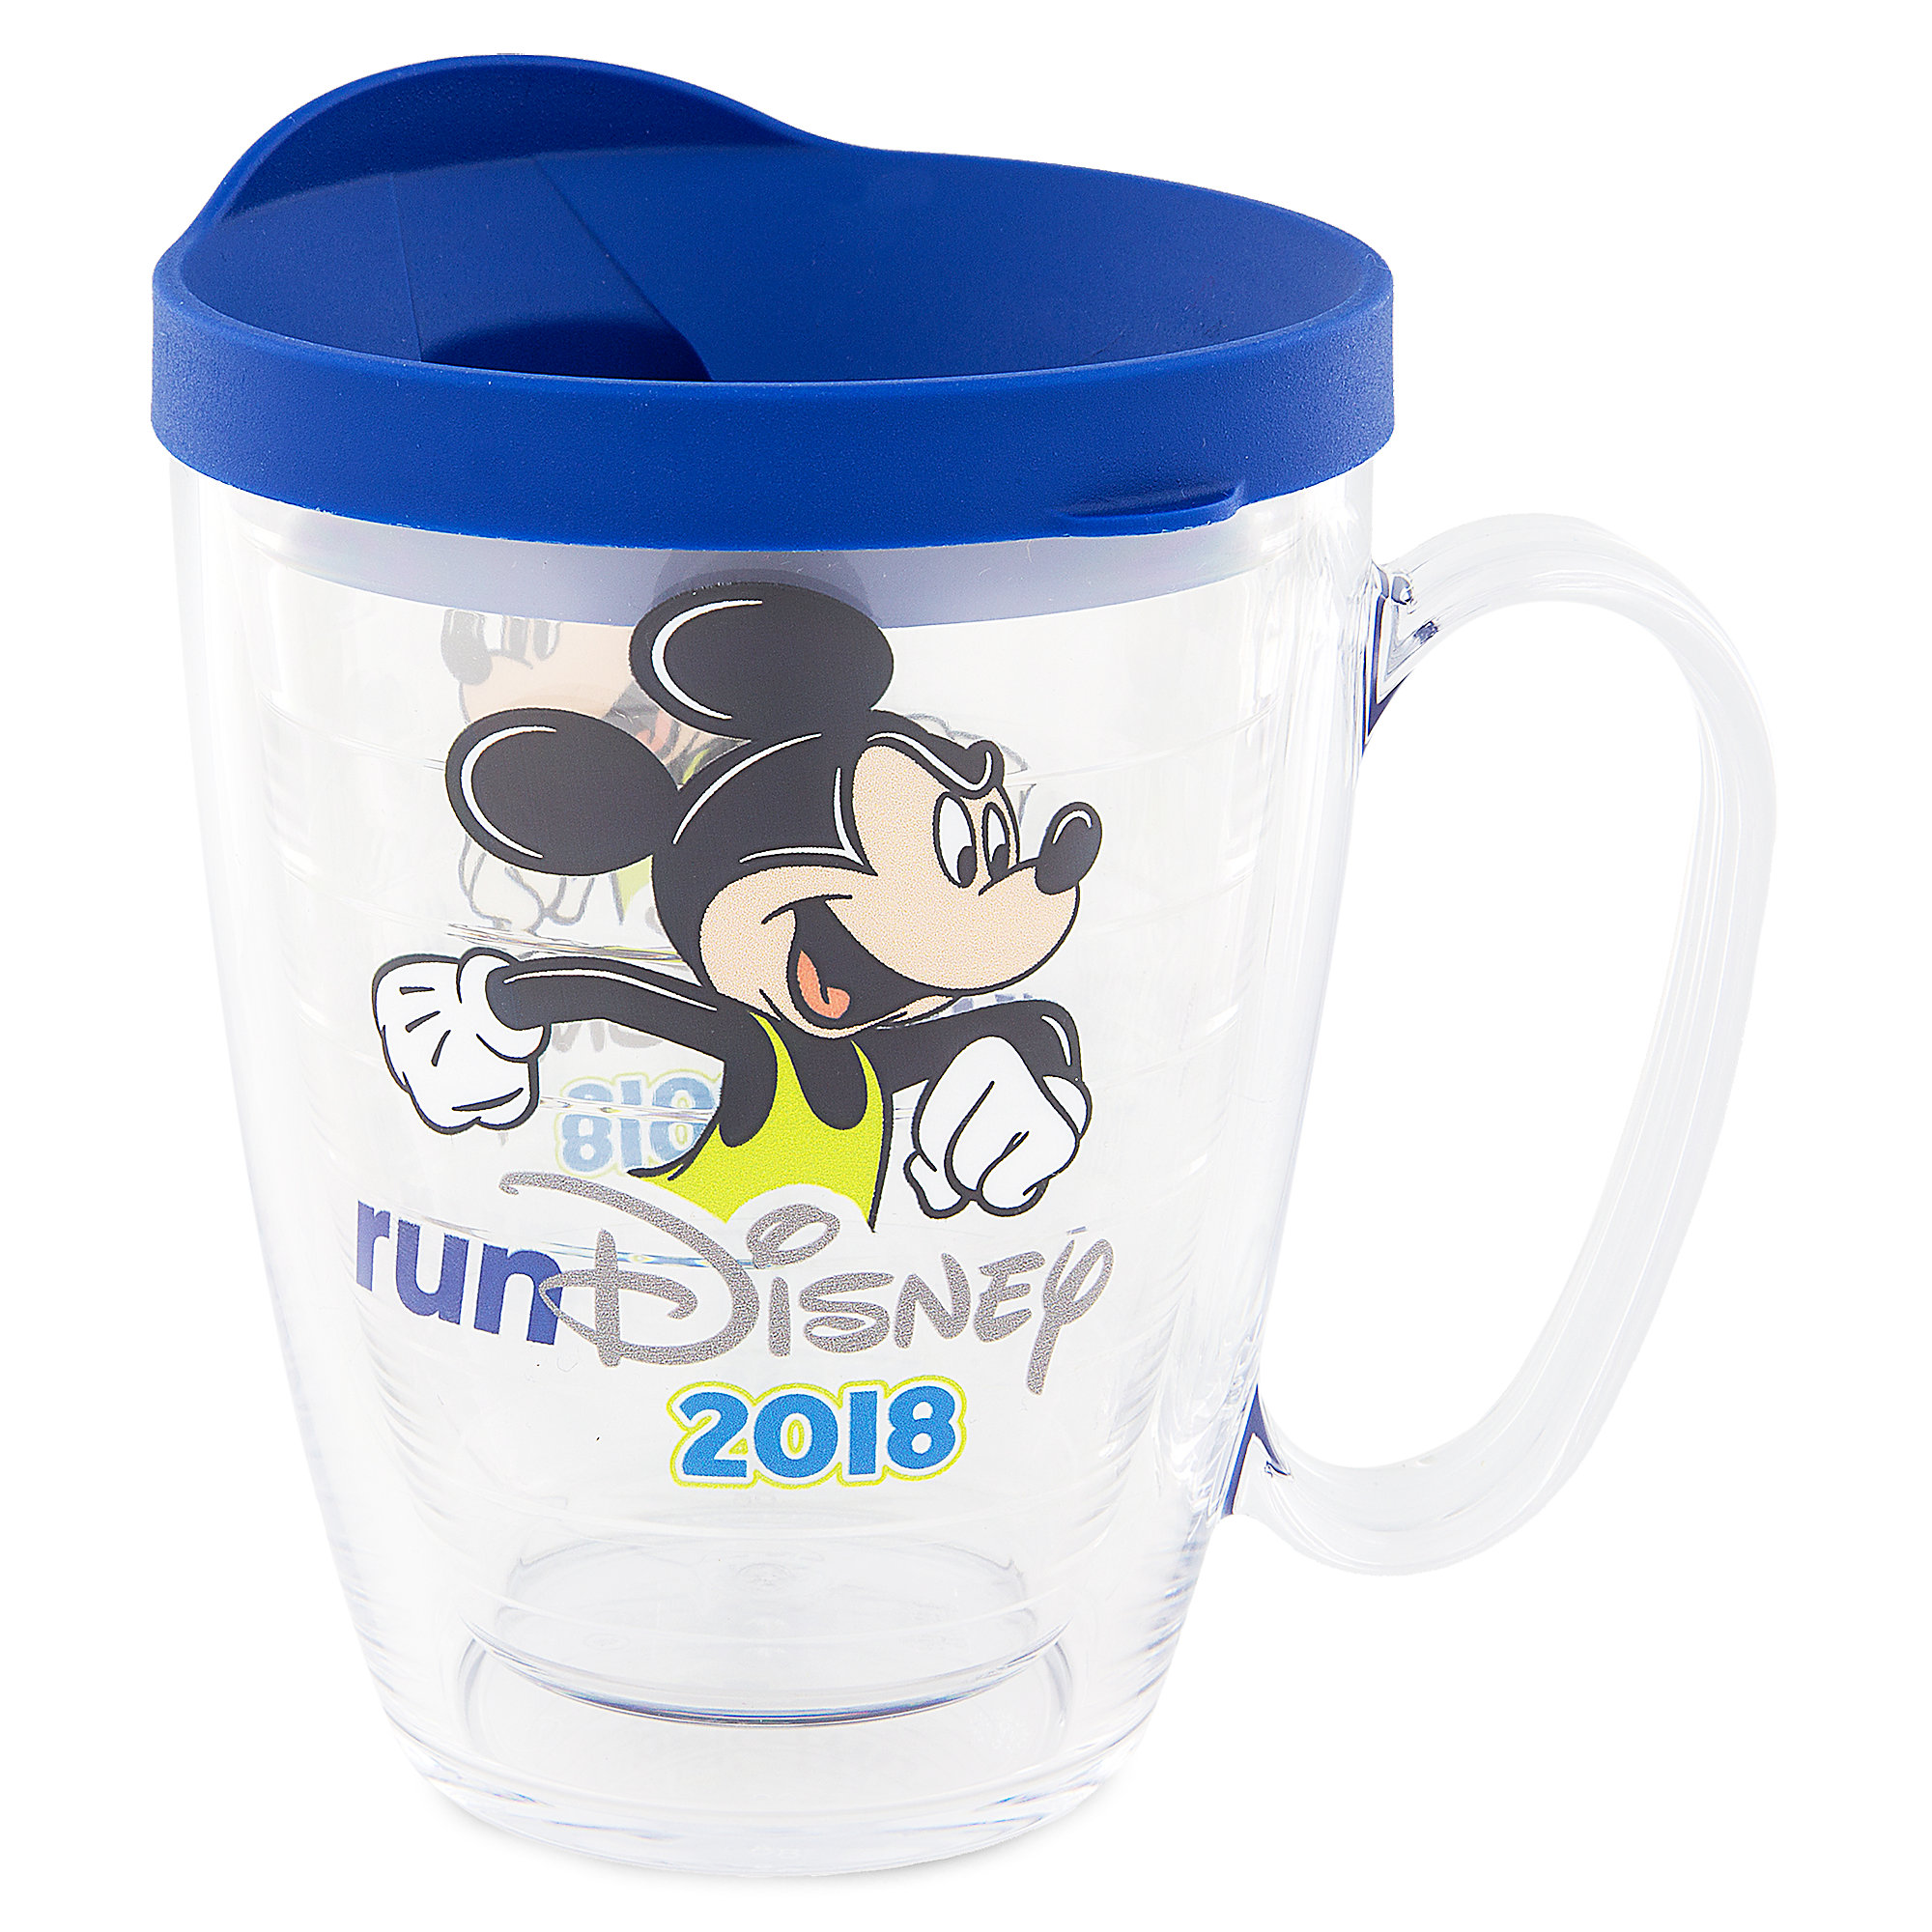 Mickey Mouse Travel Mug by Tervis - runDisney 2018